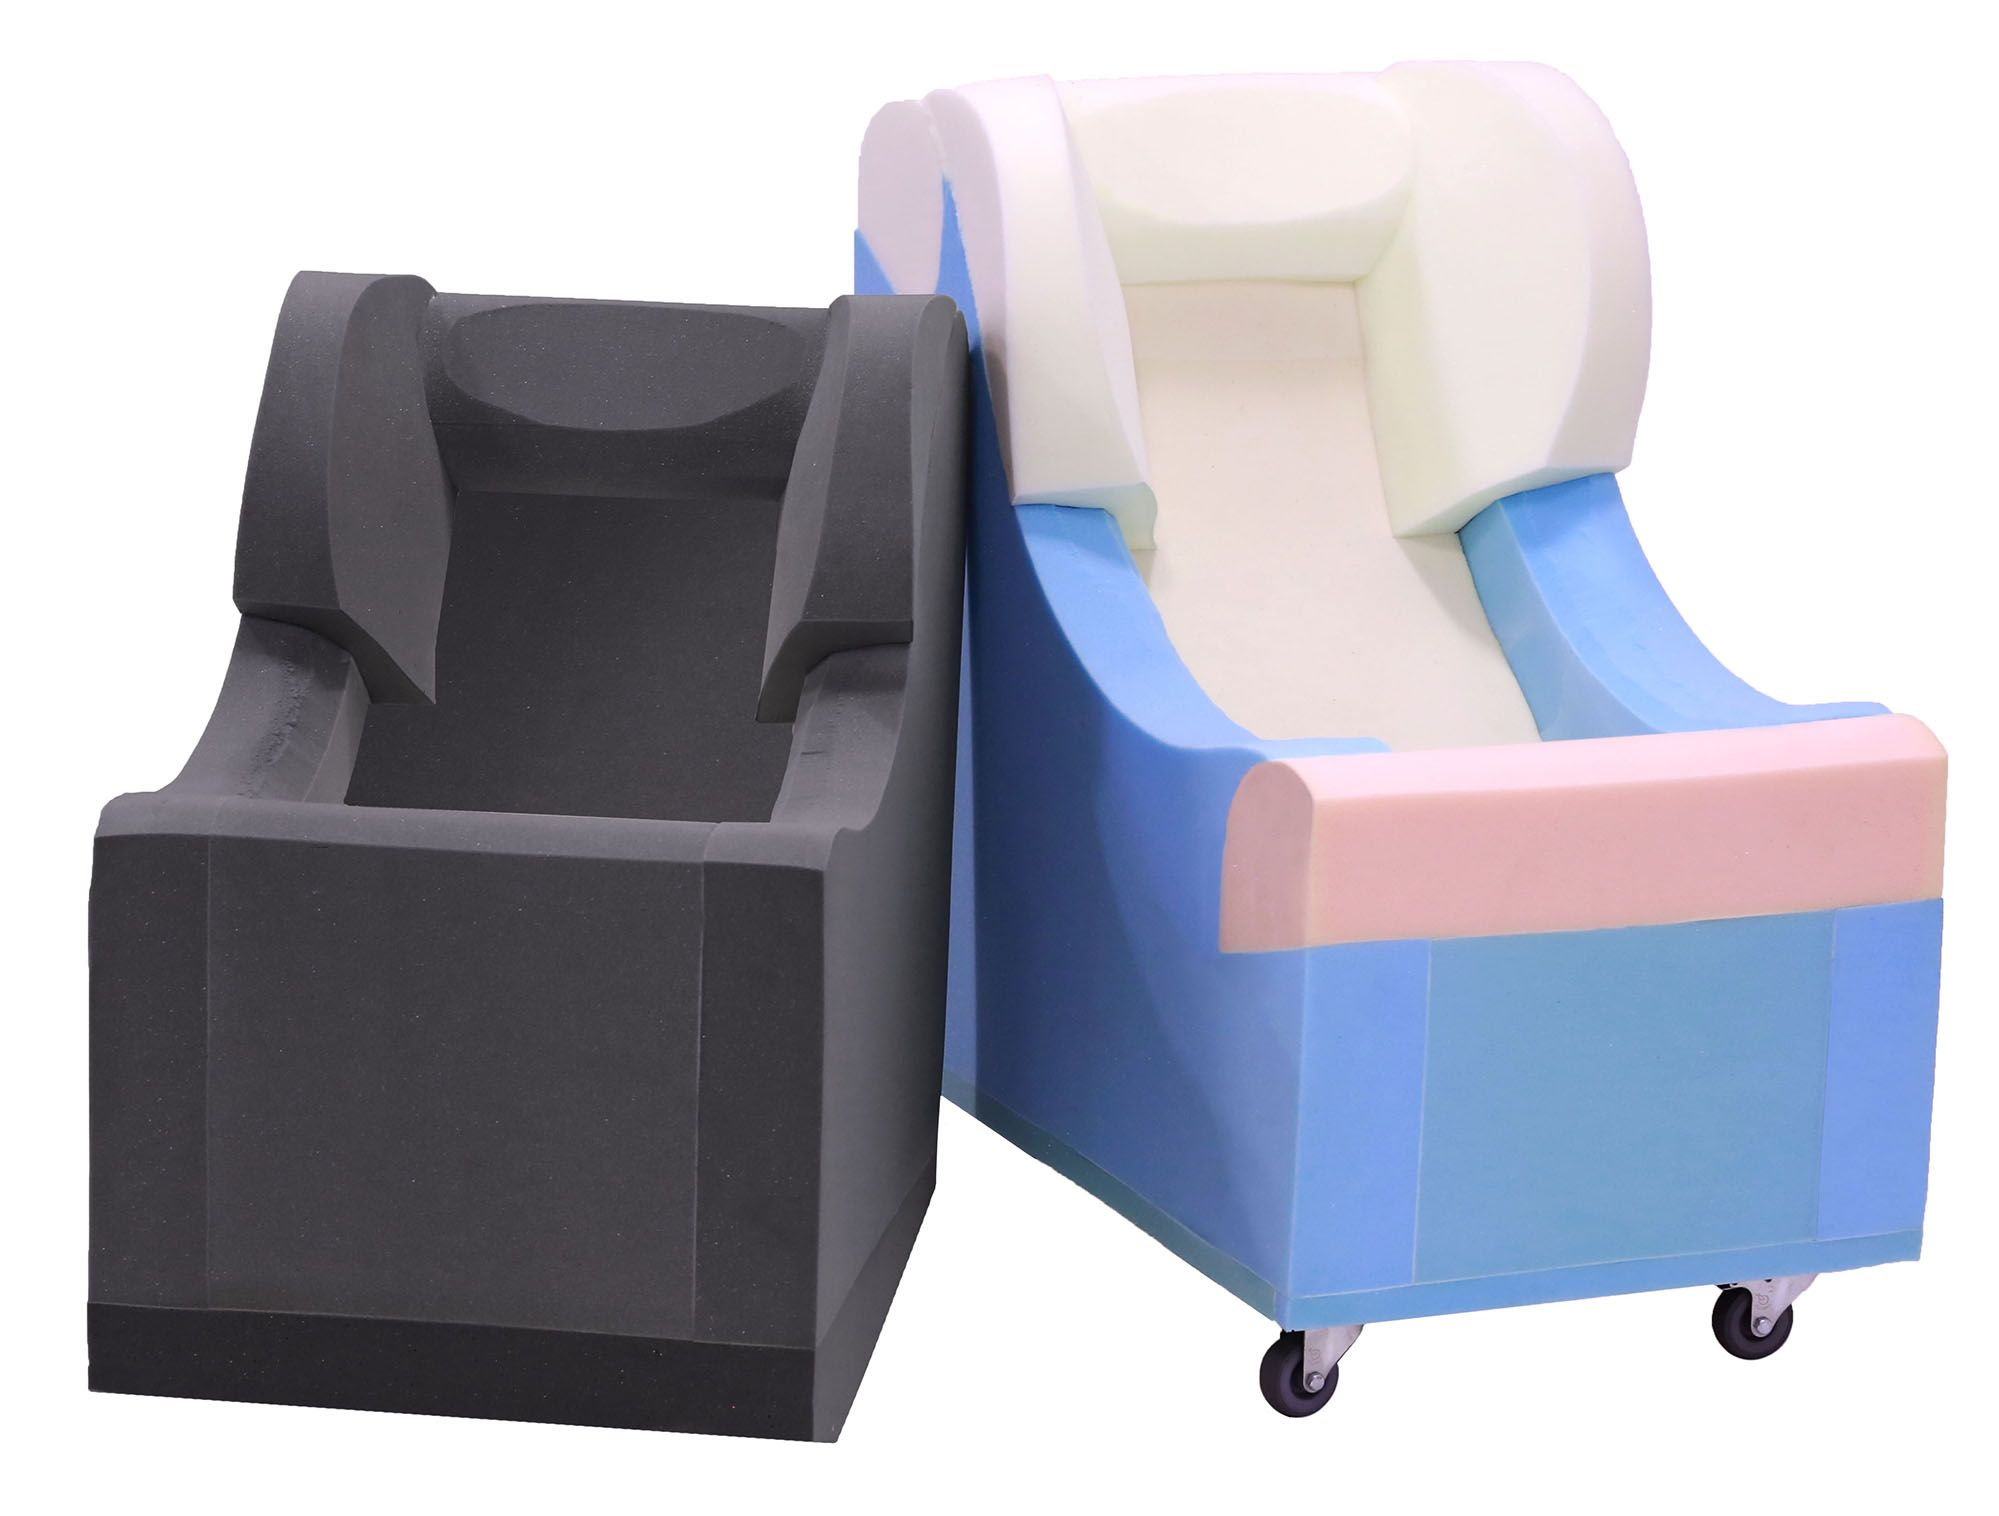 chill out chair harry bertoia special needs seating feeding comfort package freedom concepts adaptive